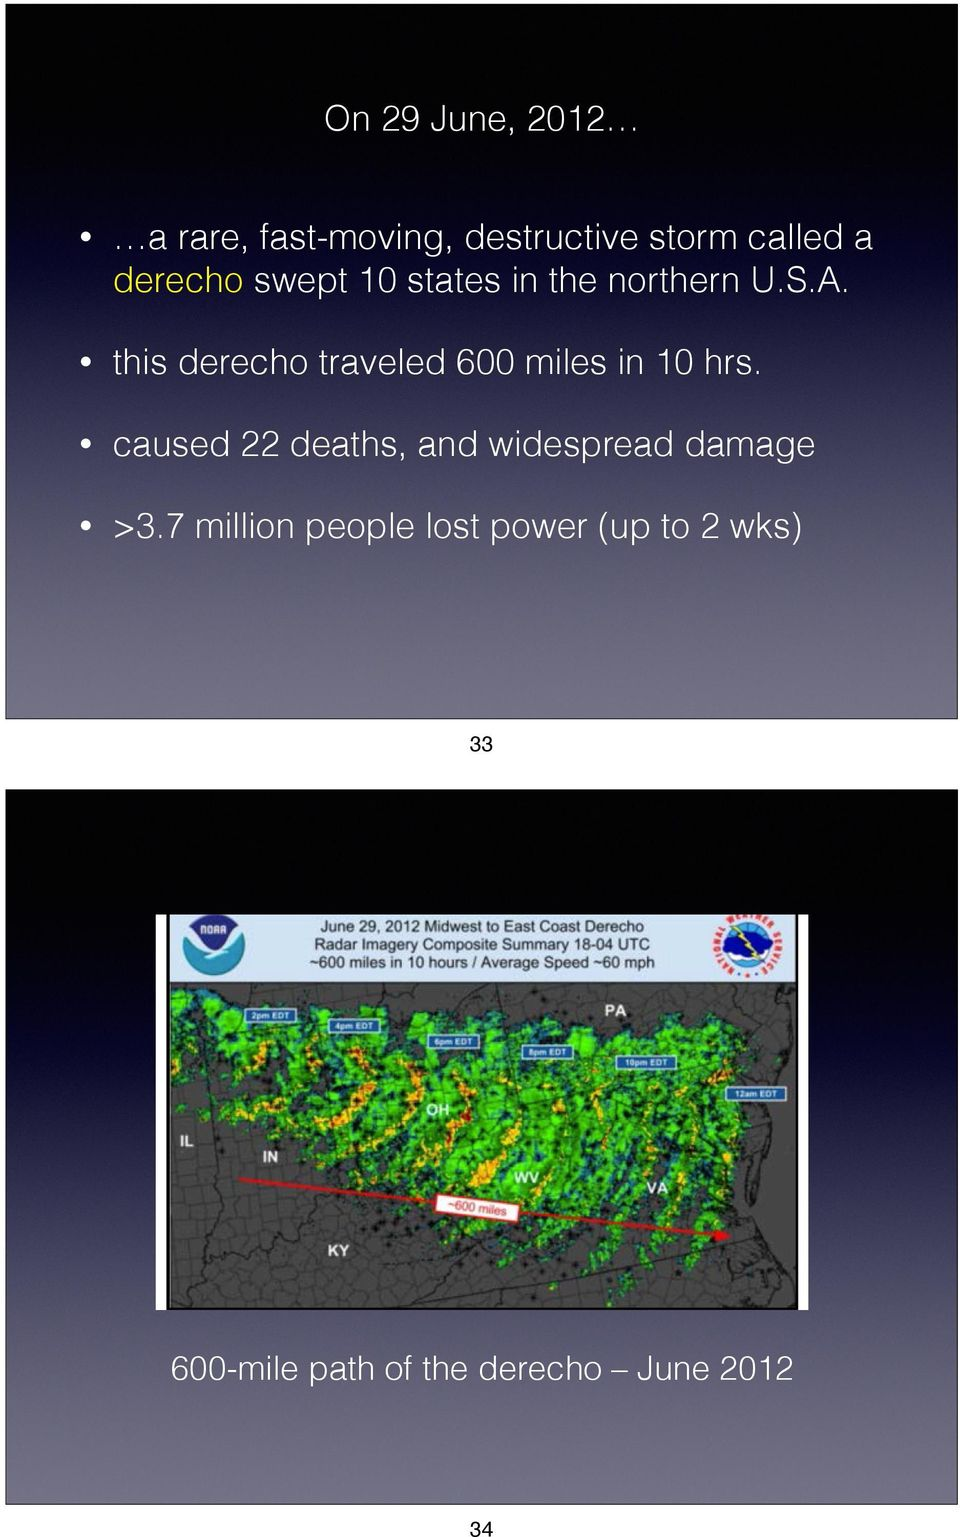 this derecho traveled 600 miles in 10 hrs.